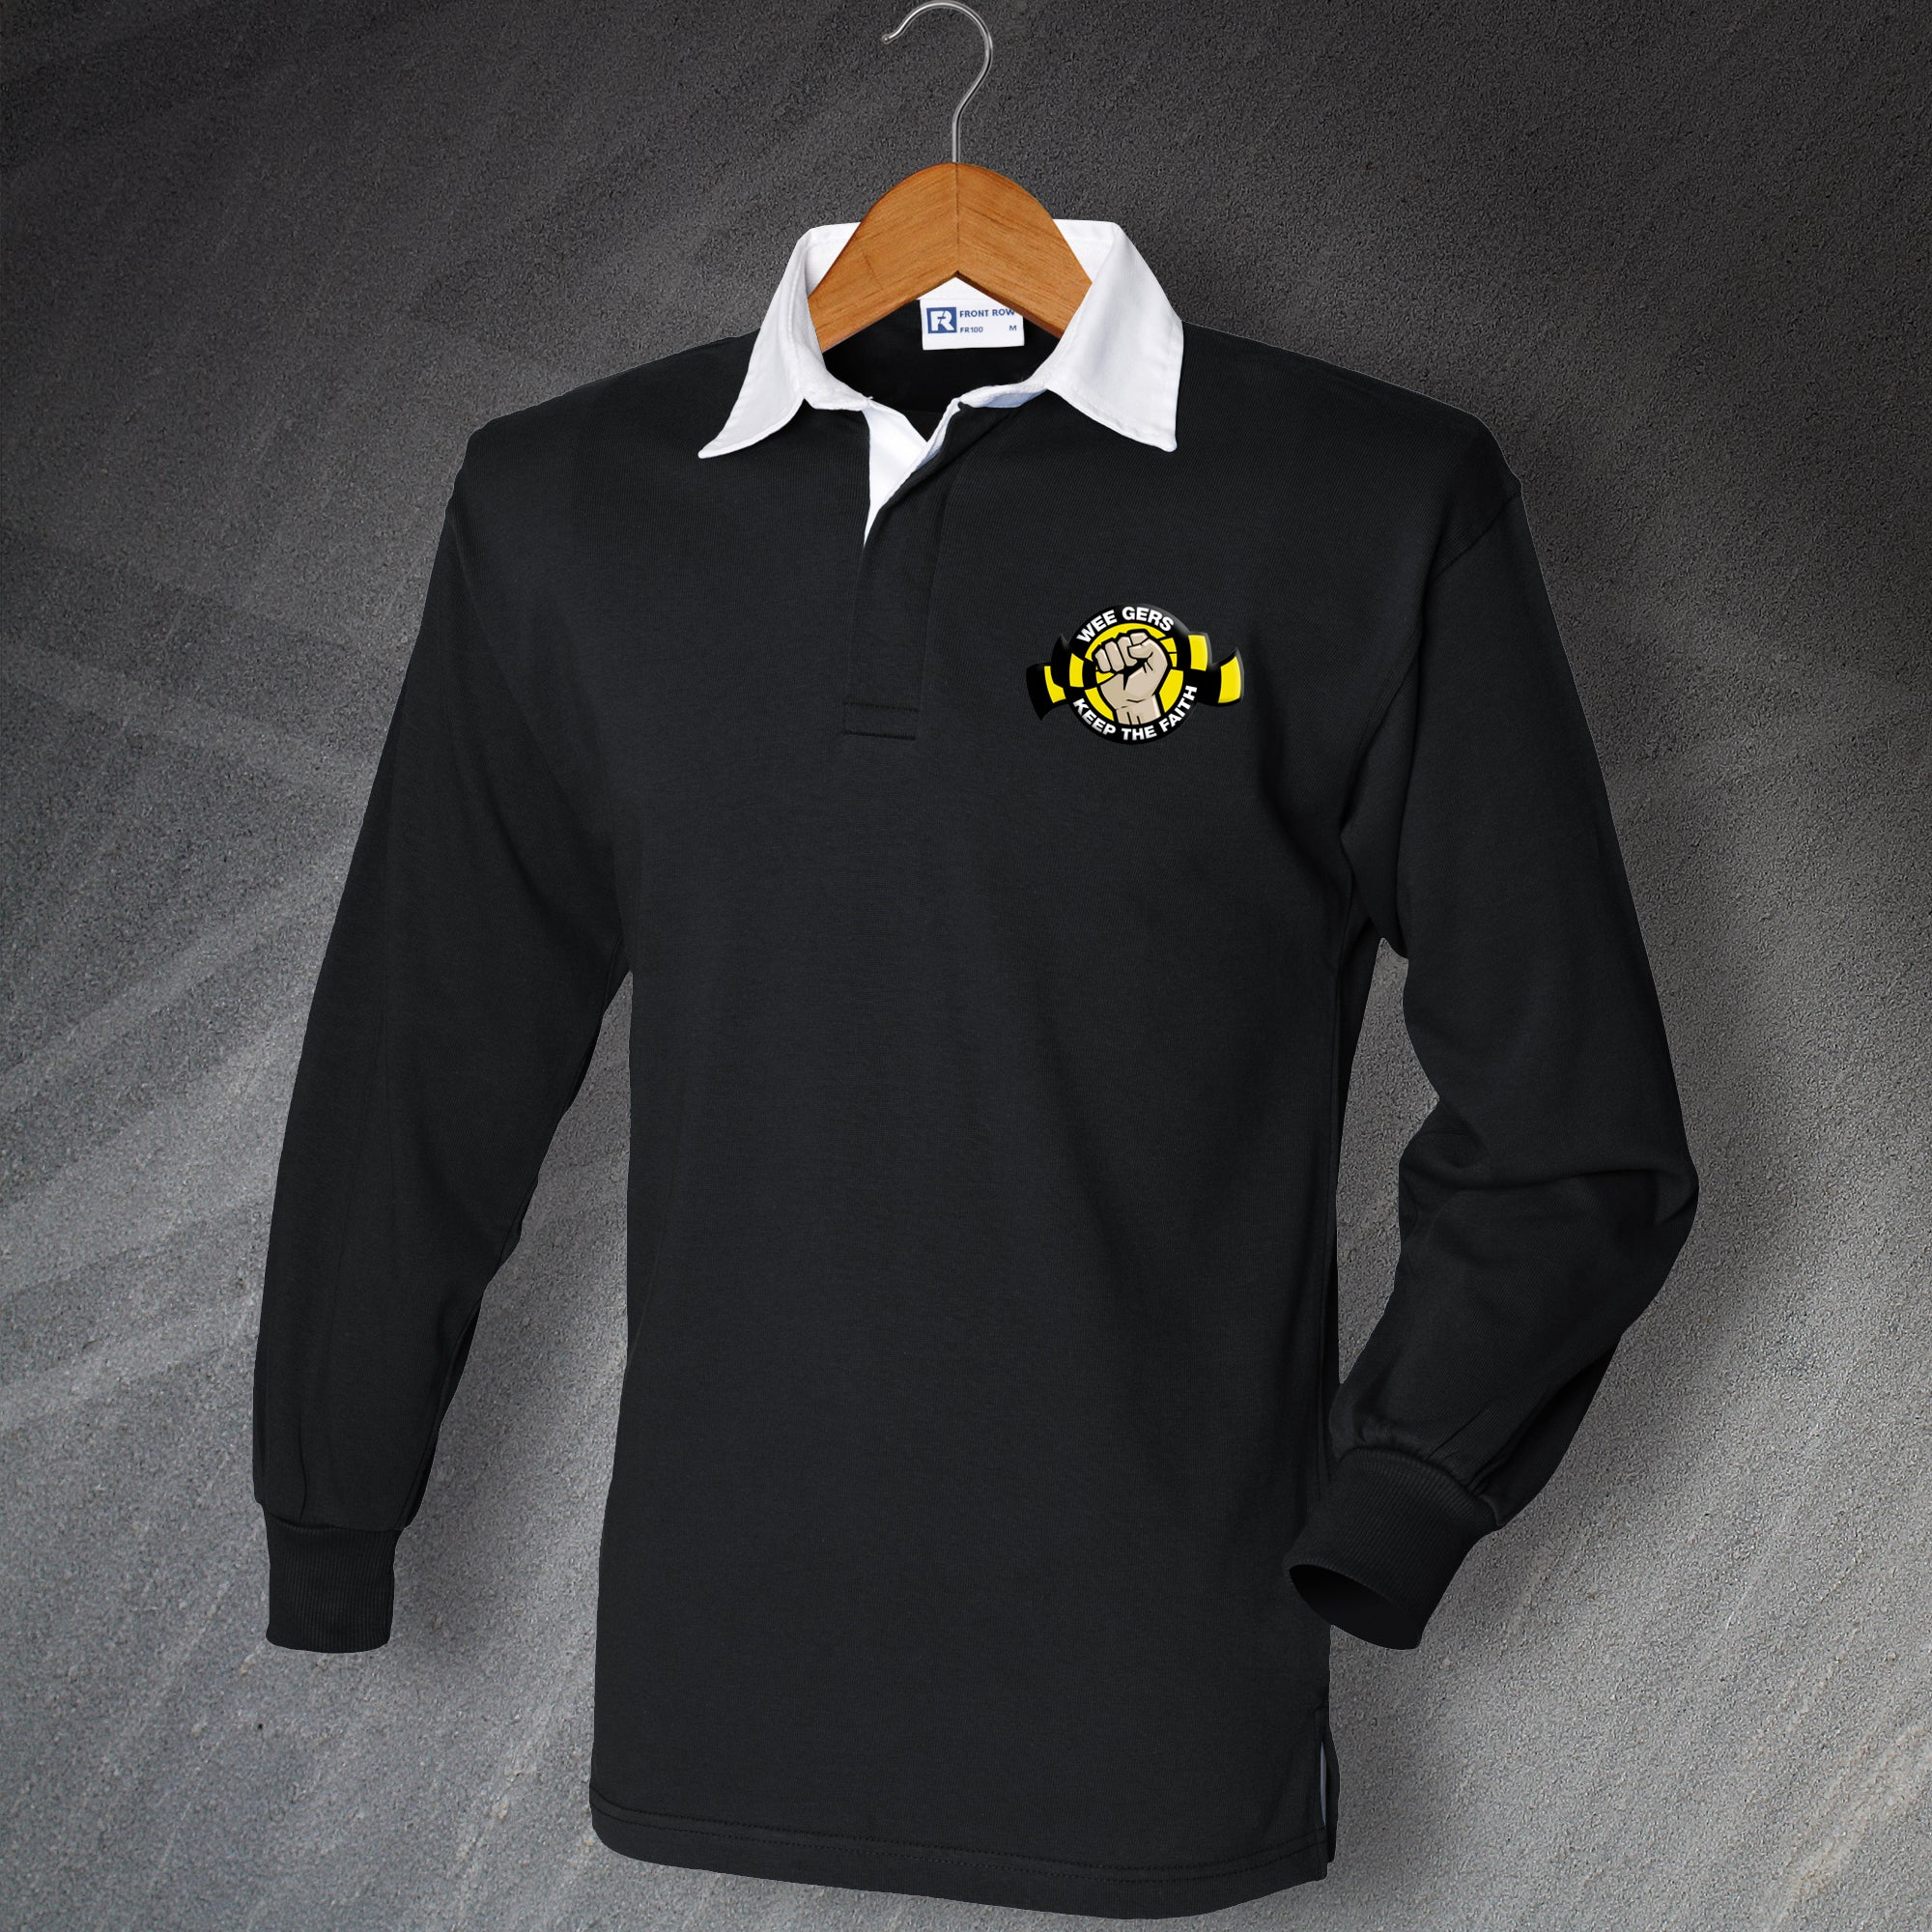 Royal Corps of Transport Front Row long sleeved Rugby shirt